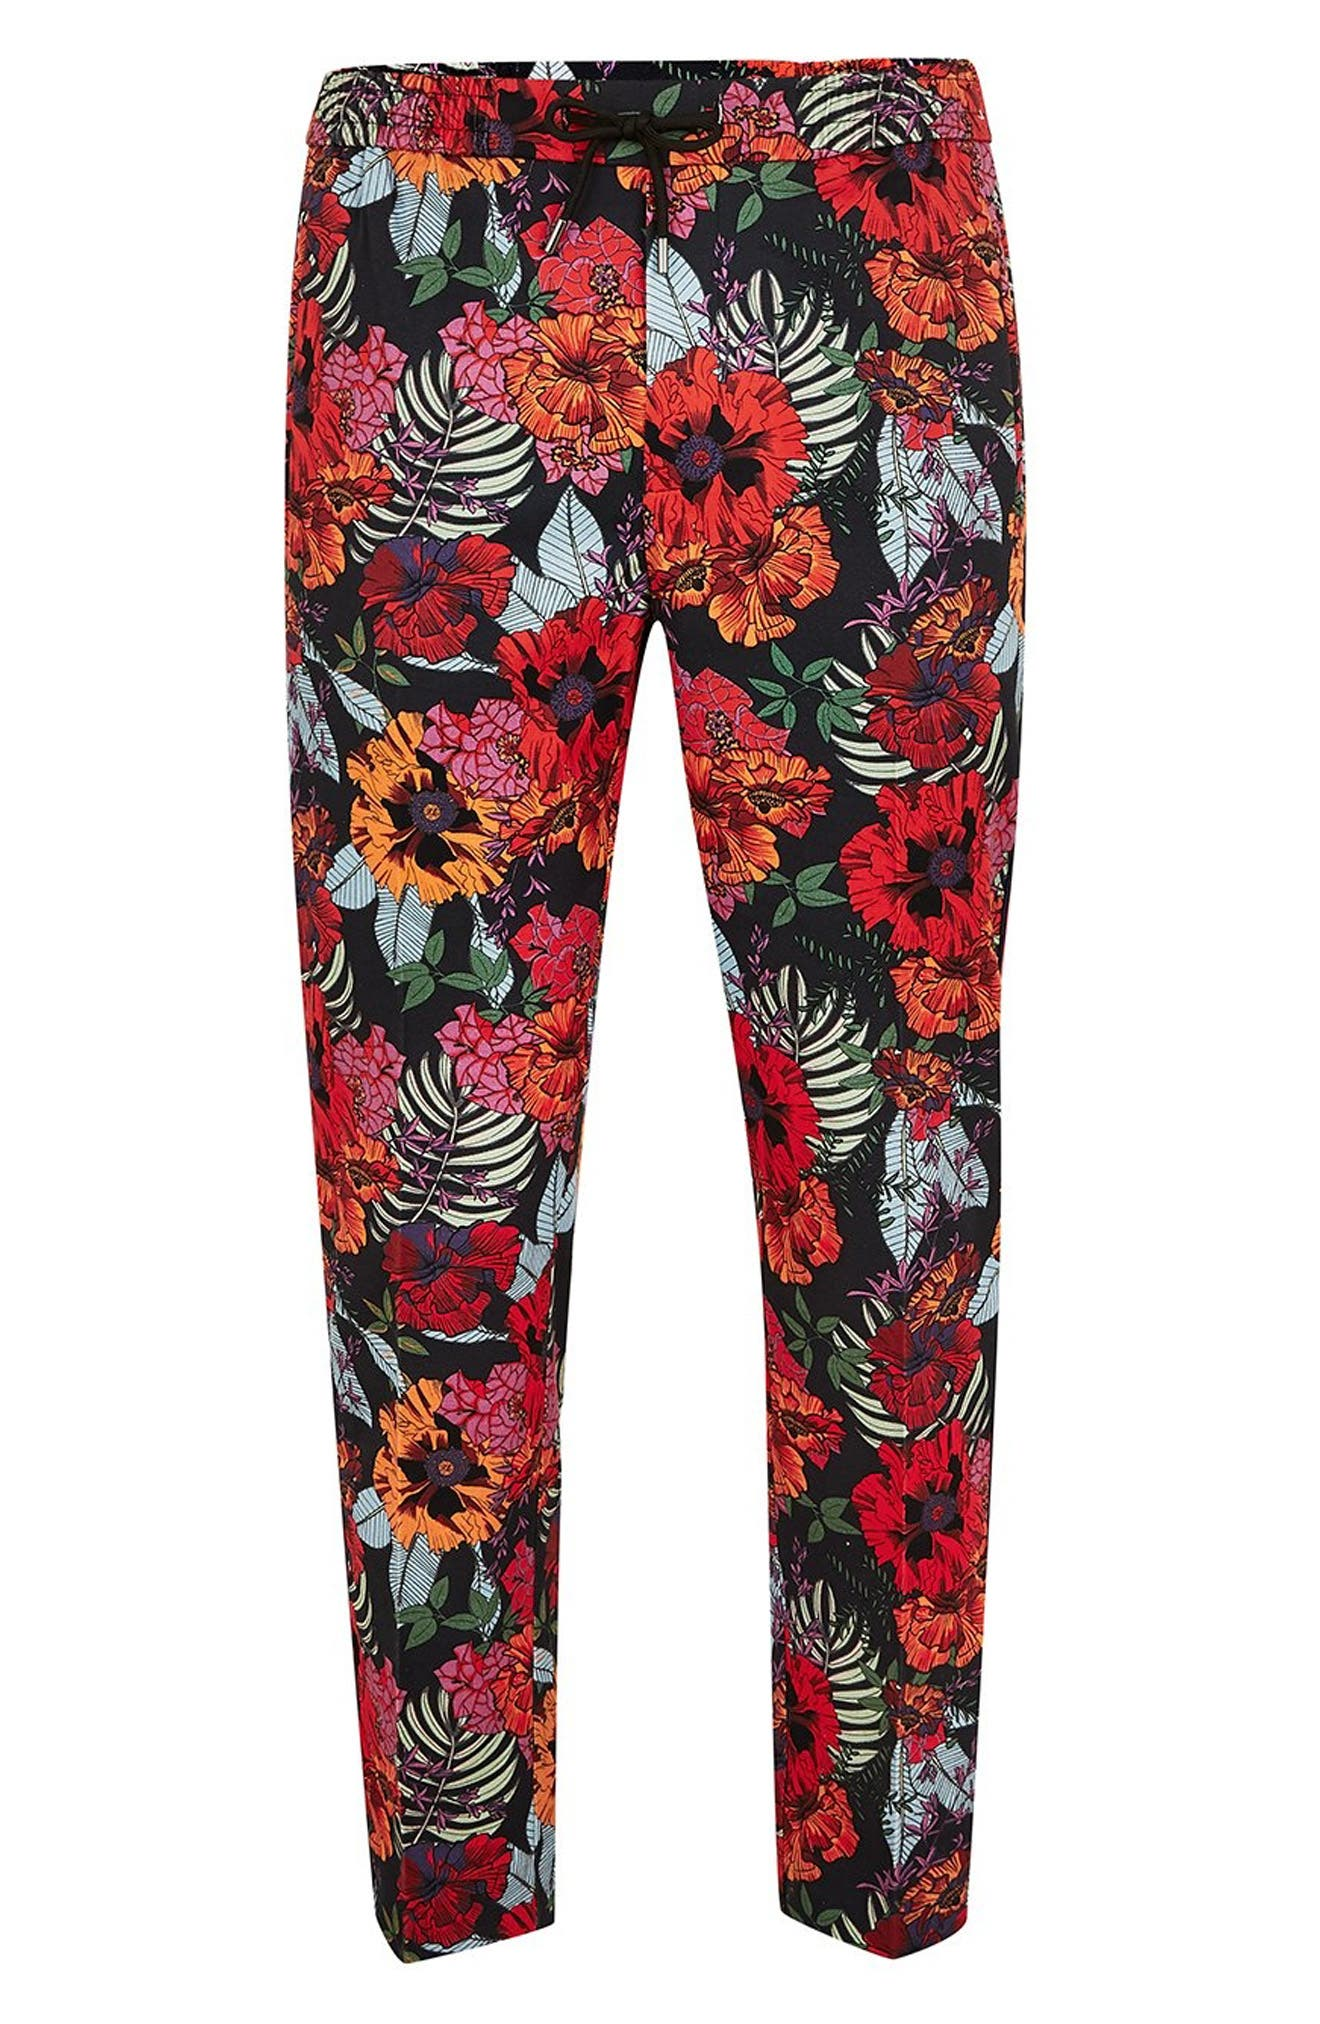 Topshop Floral Jogger Pants,                             Alternate thumbnail 4, color,                             RED MULTI